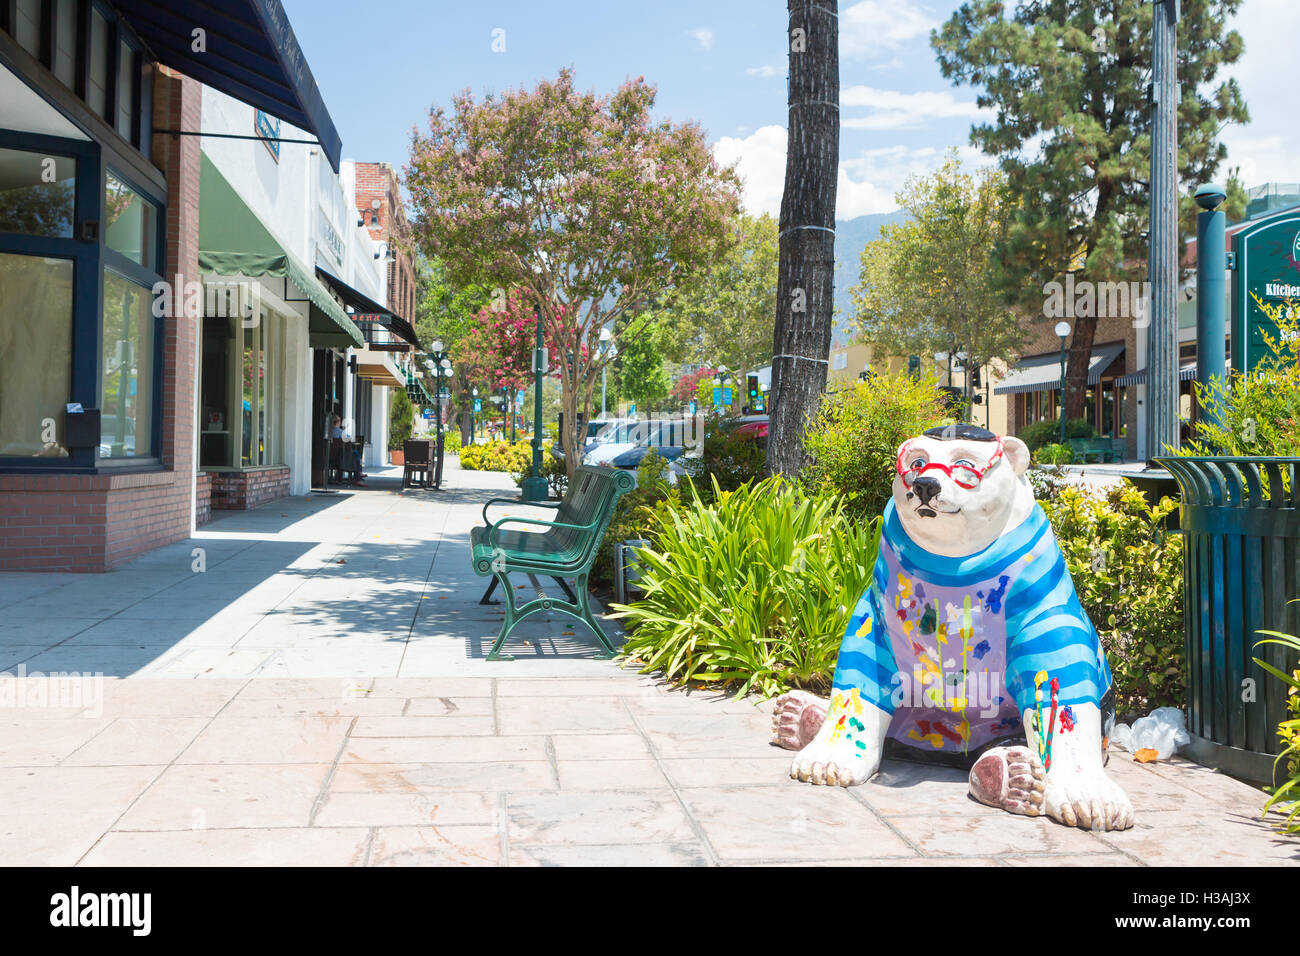 Los Angeles, USA - 6 July, 2014: A view over down S Myrtle Ave in Monrovia, Los Angeles, USA - Stock Image